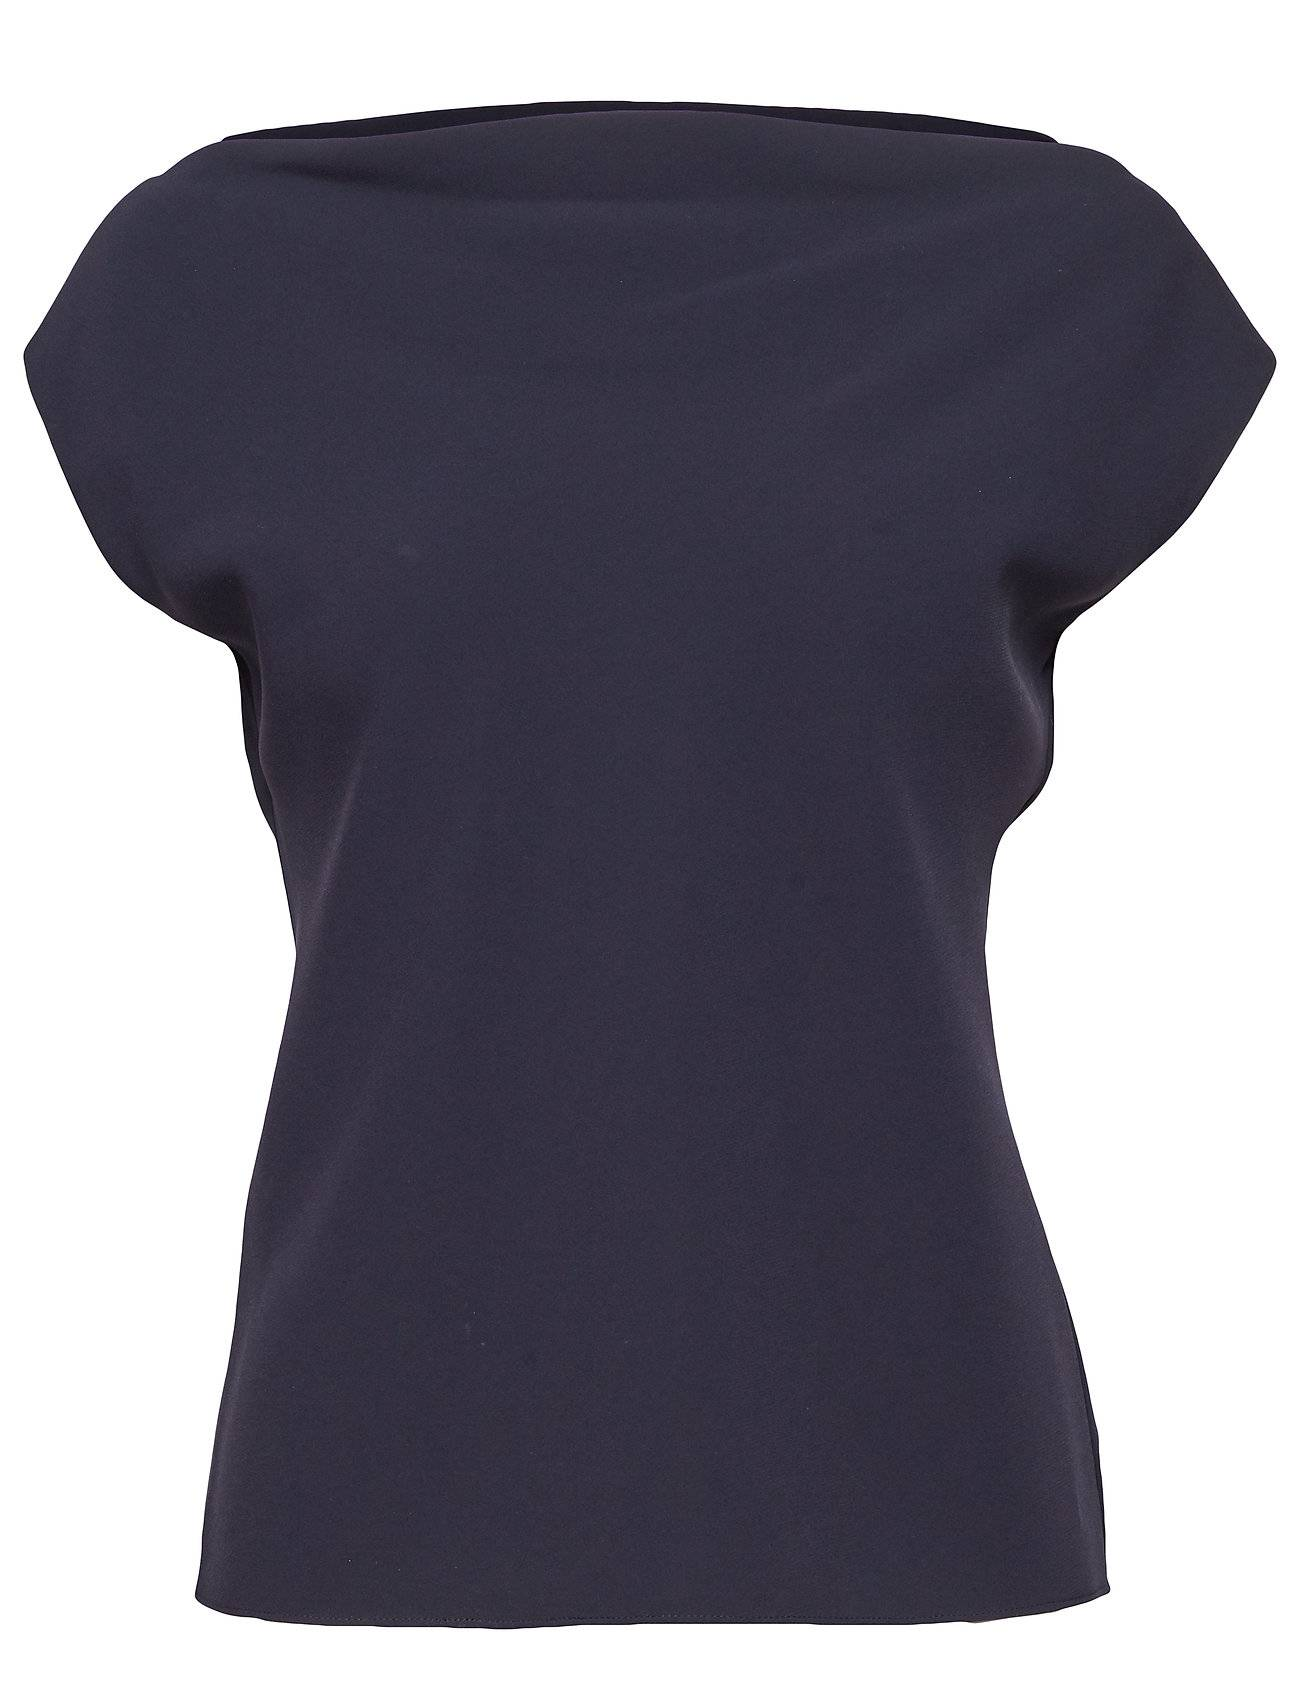 Theory Draped Boatneck Top